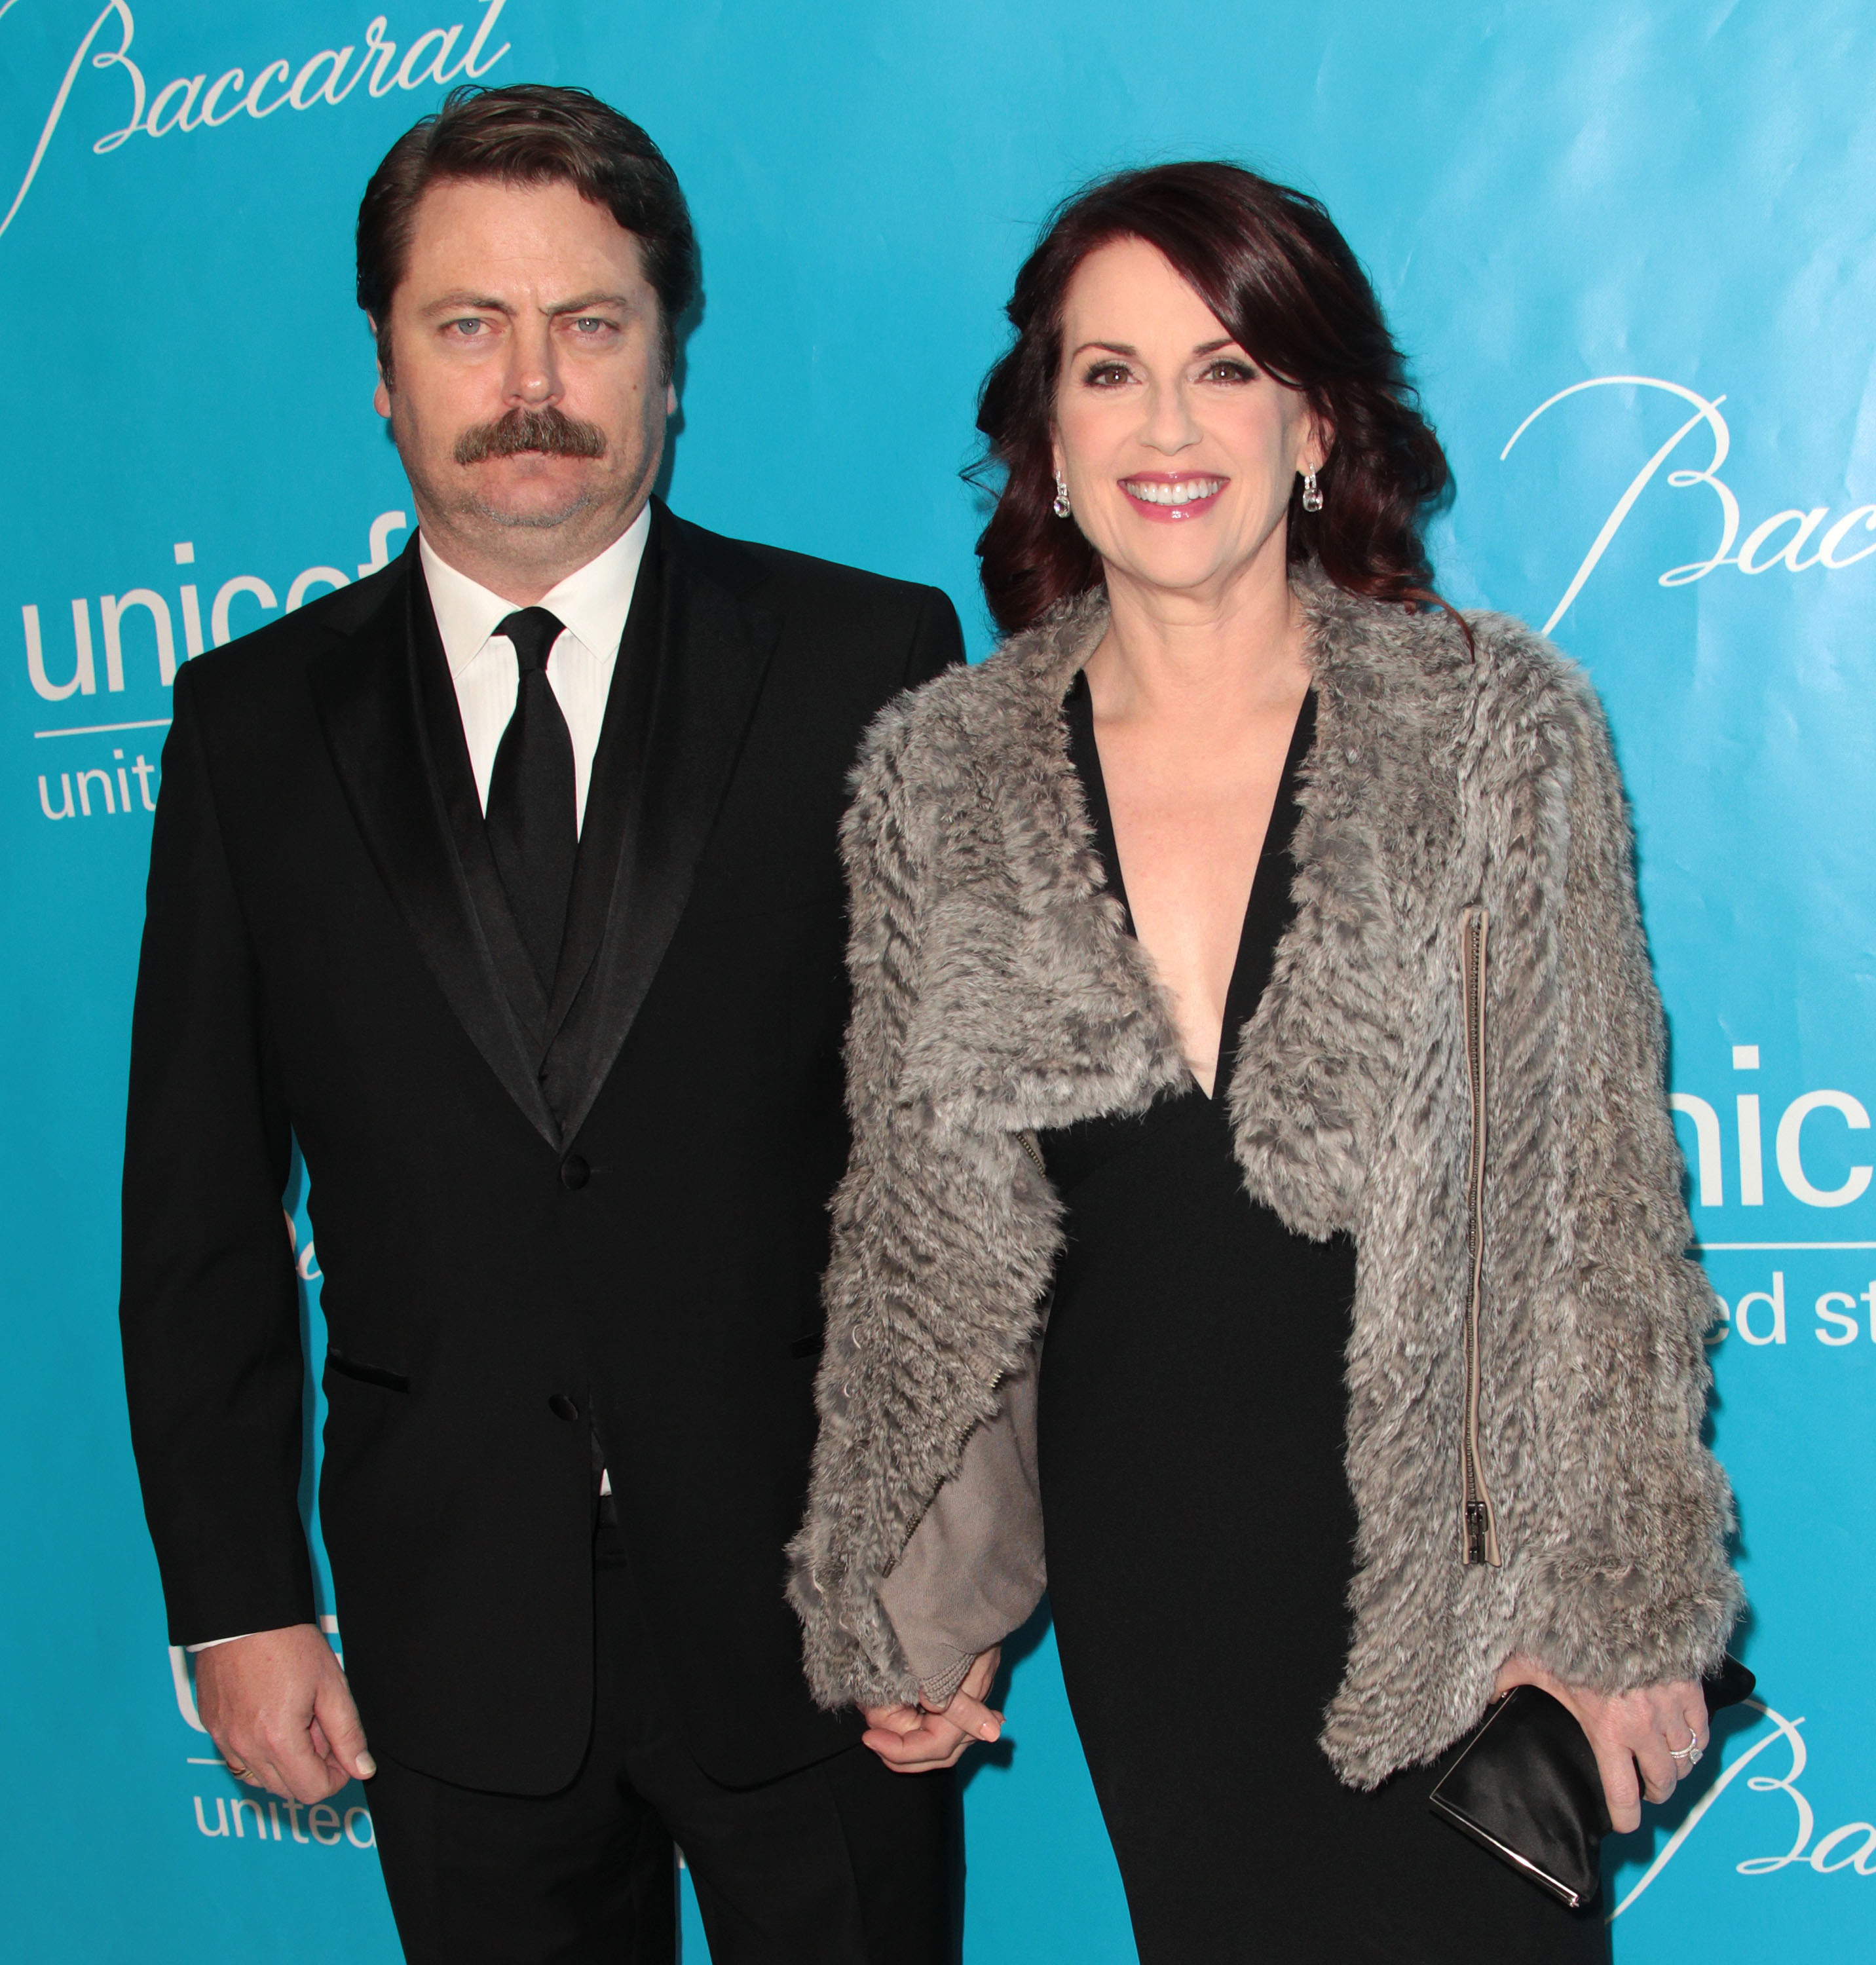 Nick Offerman and Megan Mullally were in attendance at ...